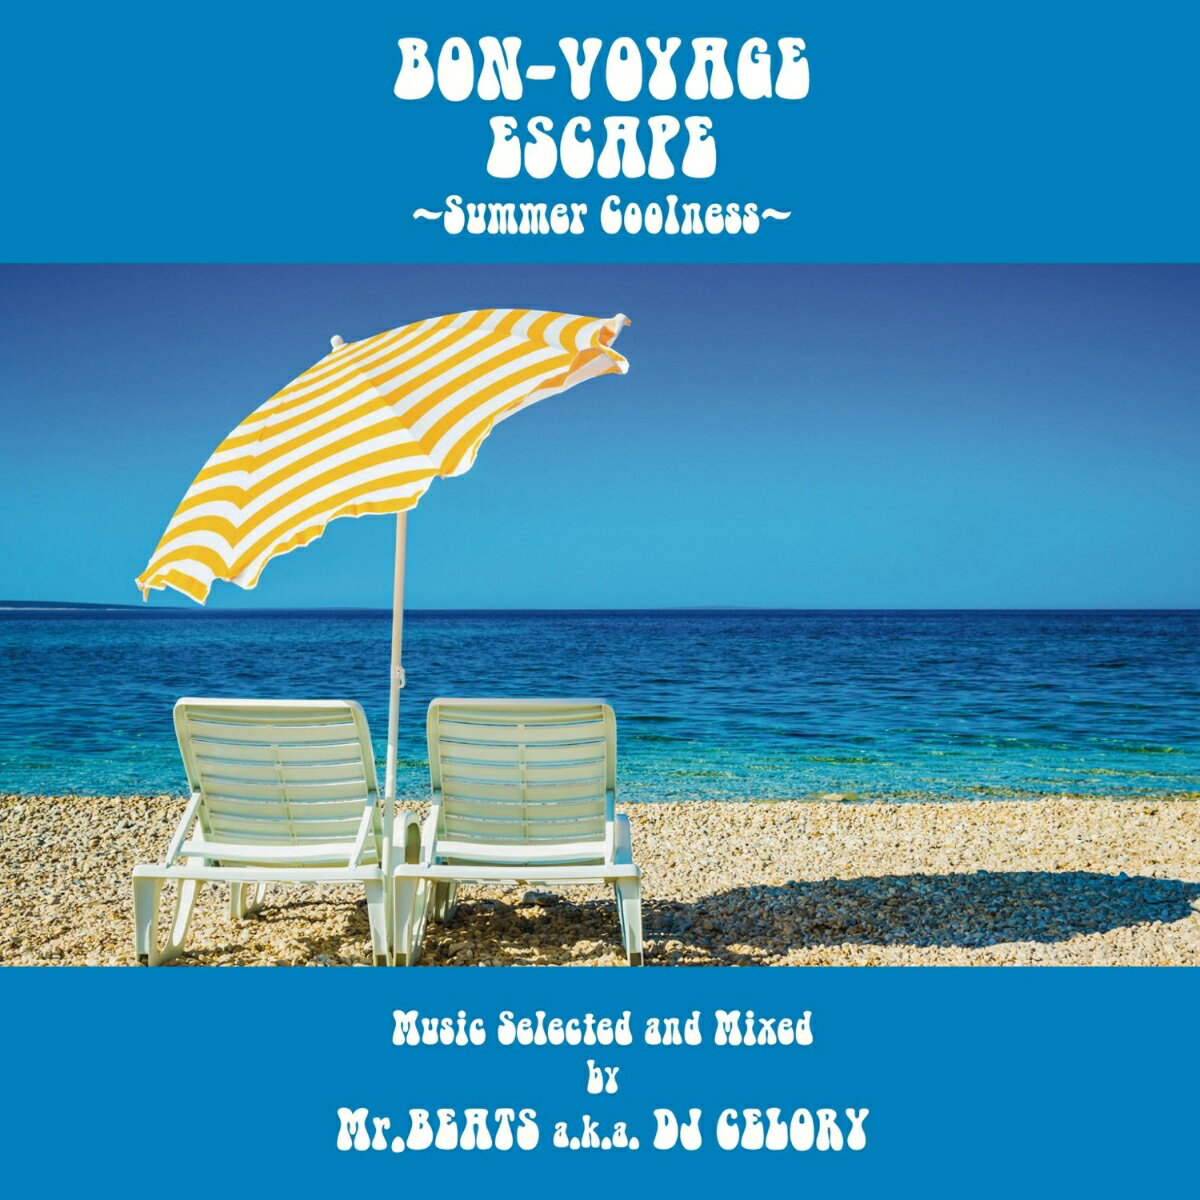 BON-VOYAGE ESCAPE 〜Summer Coolness〜 Music selected and Mixed by Mr.BEATS a.k.a DJ CELORY画像